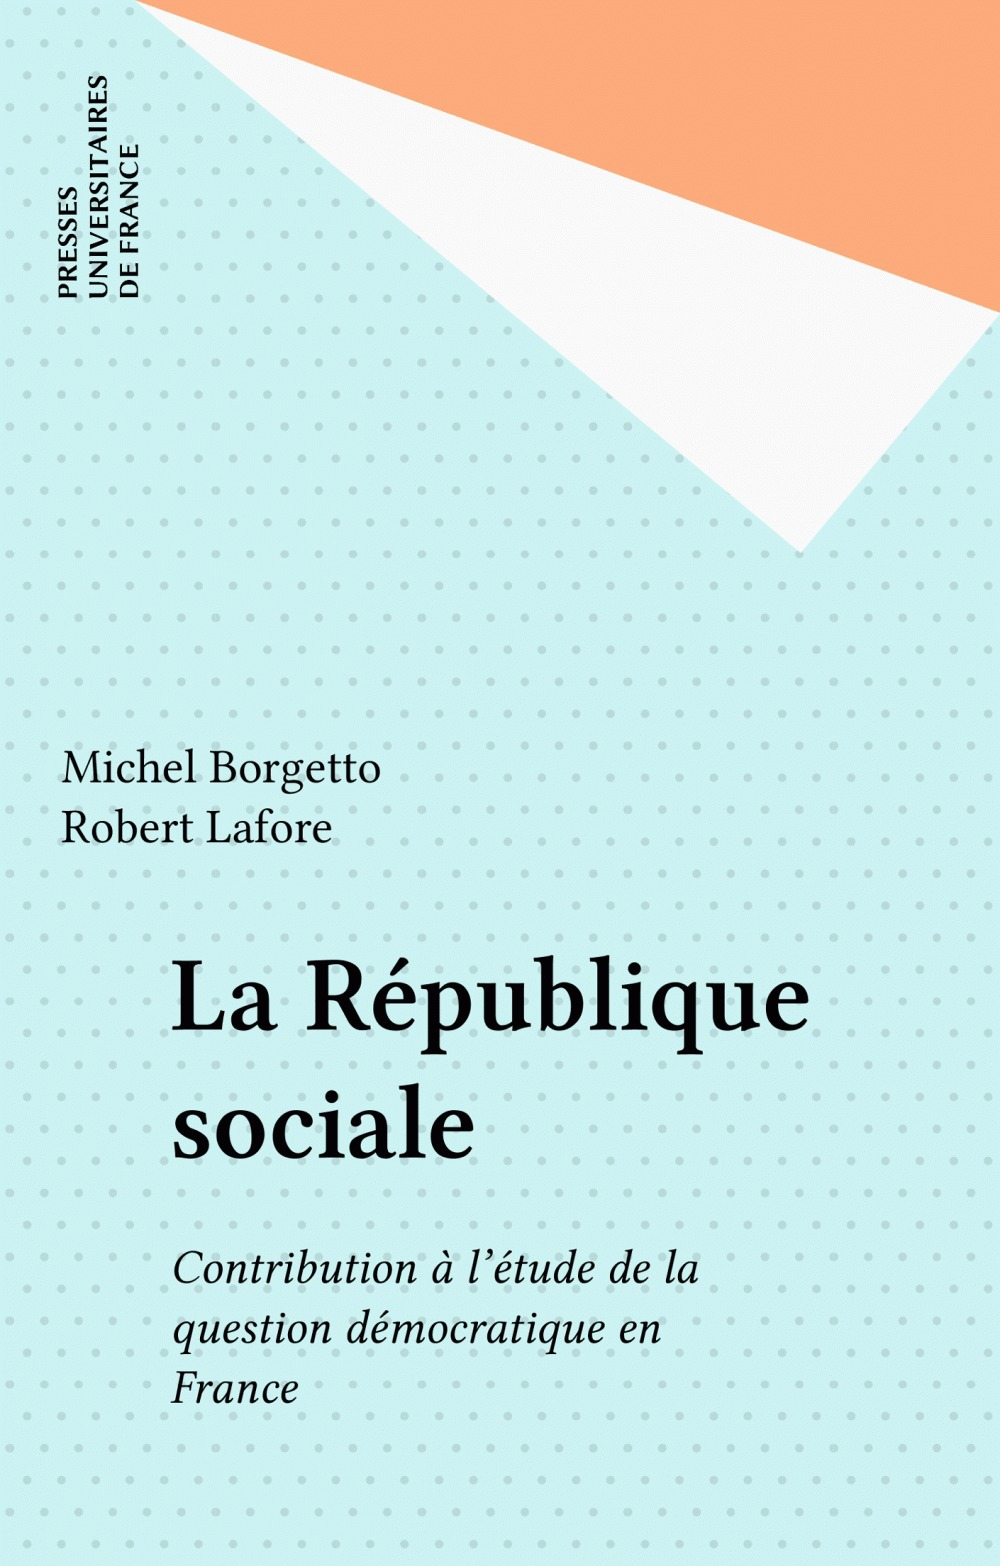 La république sociale ; contribution à l'étude de la question démocratique en France